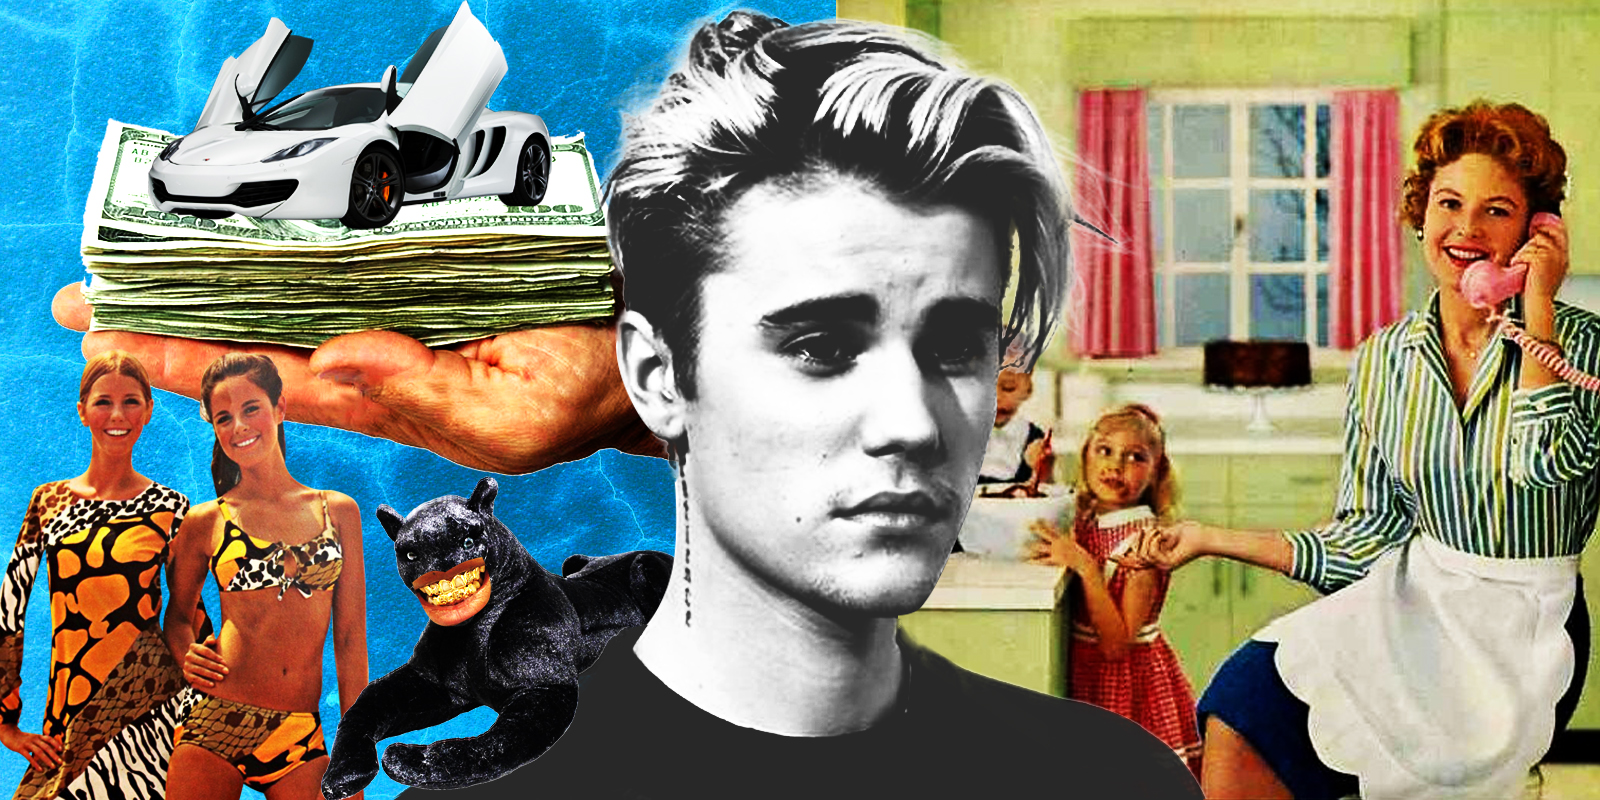 Justin Bieber finds meaning in God and family rather than fame and fortune